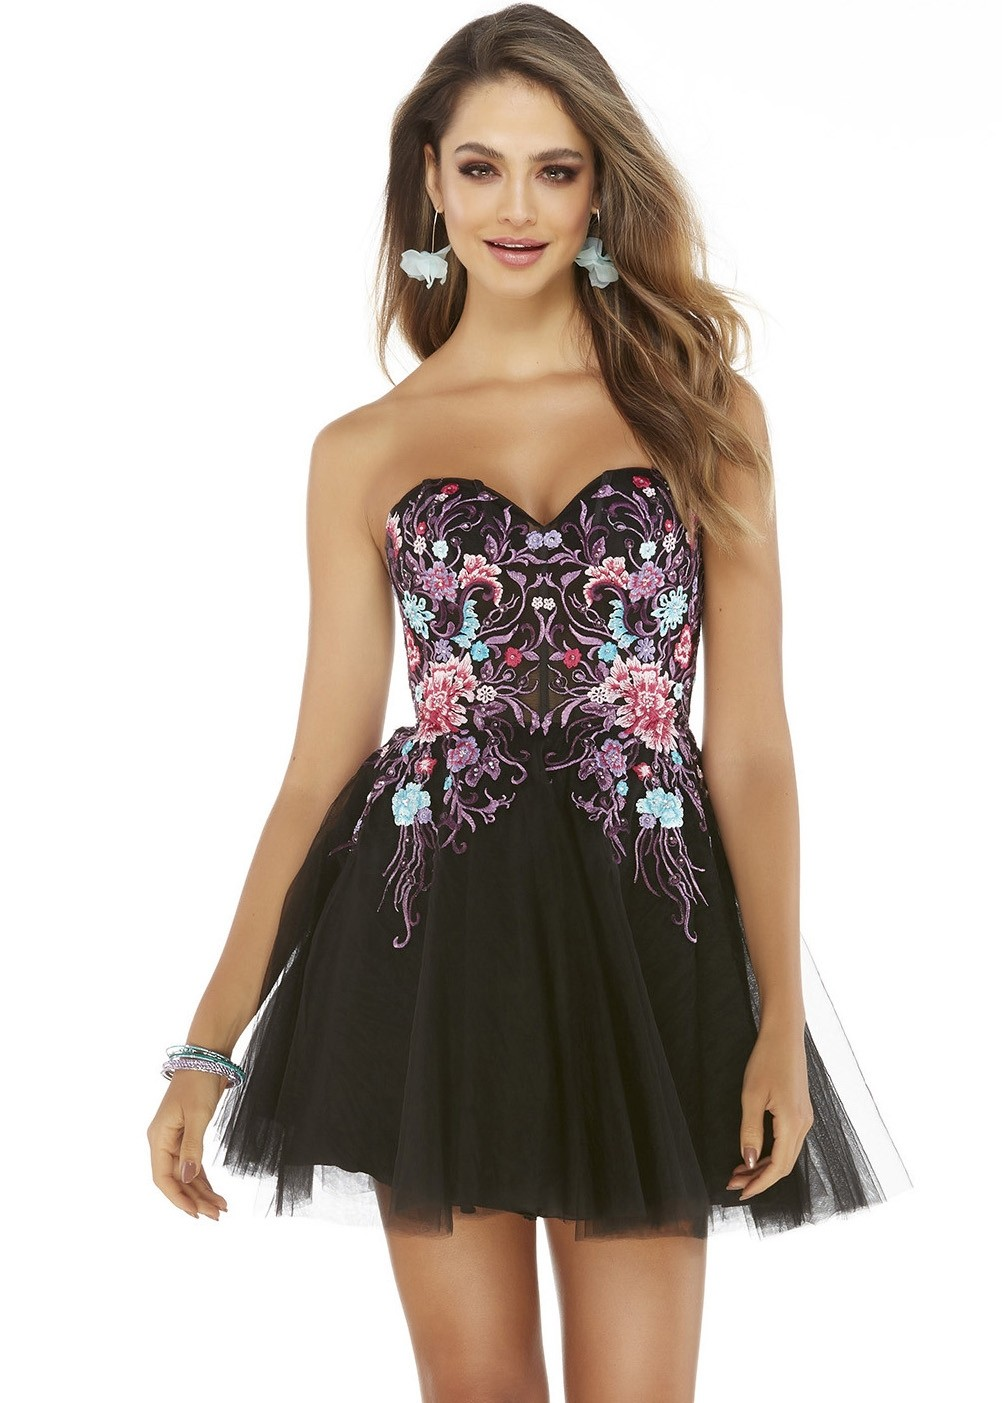 Alyce 3065 Black Jewel Embroidered Short Dress